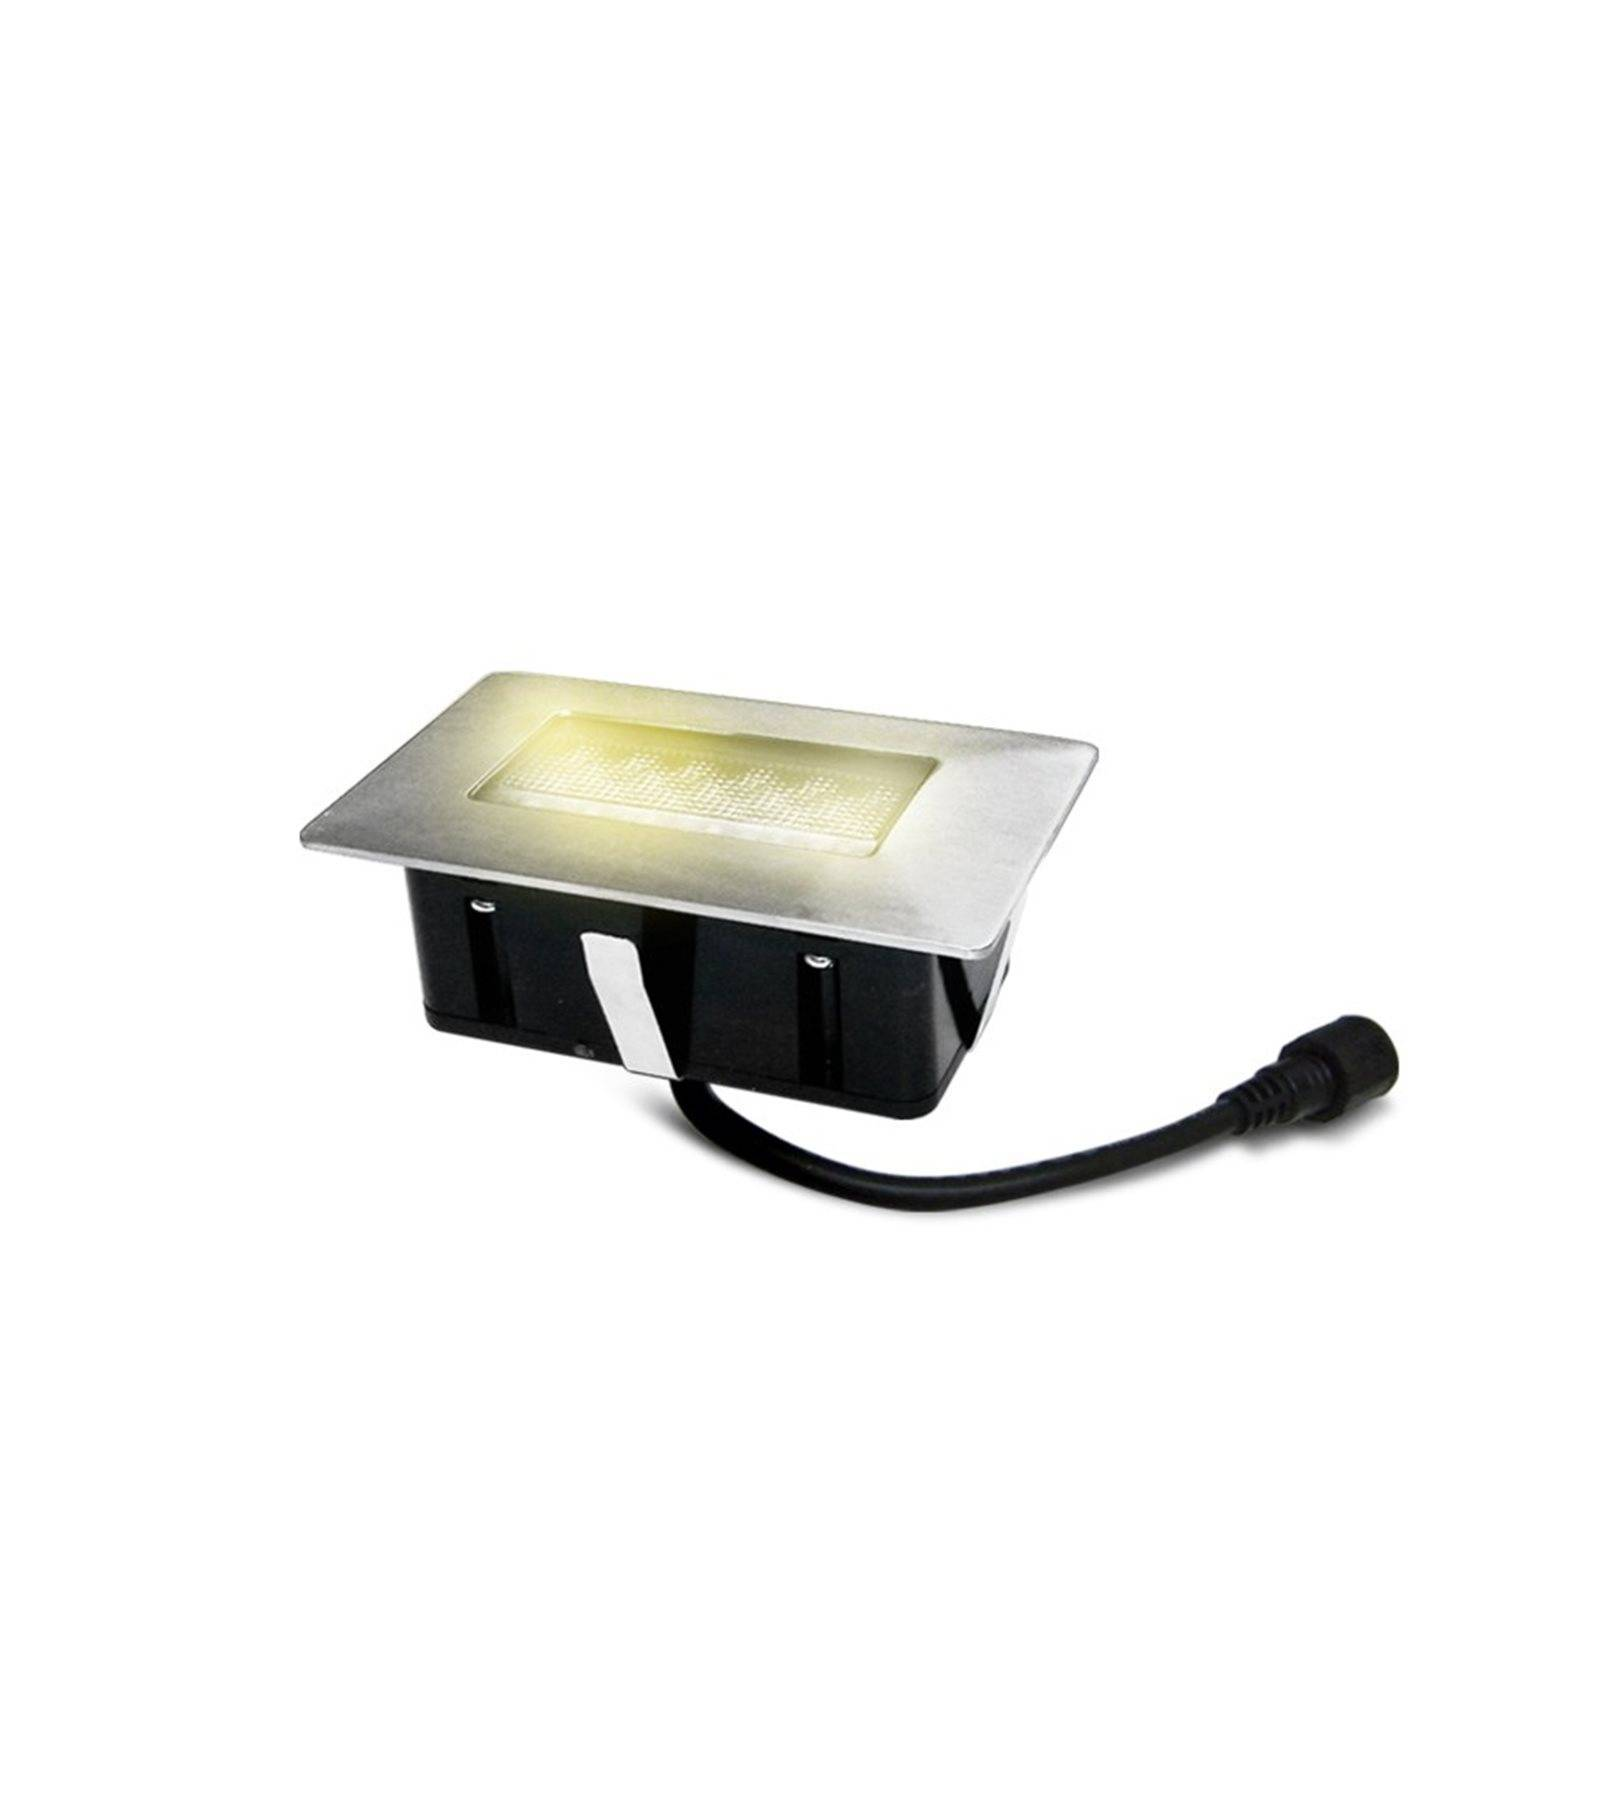 Easy Connect Mini Spot encastrable rectangle 6x10cm Inox Mini DECK Light 2W LED integrés IP67 Blanc Chaud extérieur EASY CONNECT - 65446